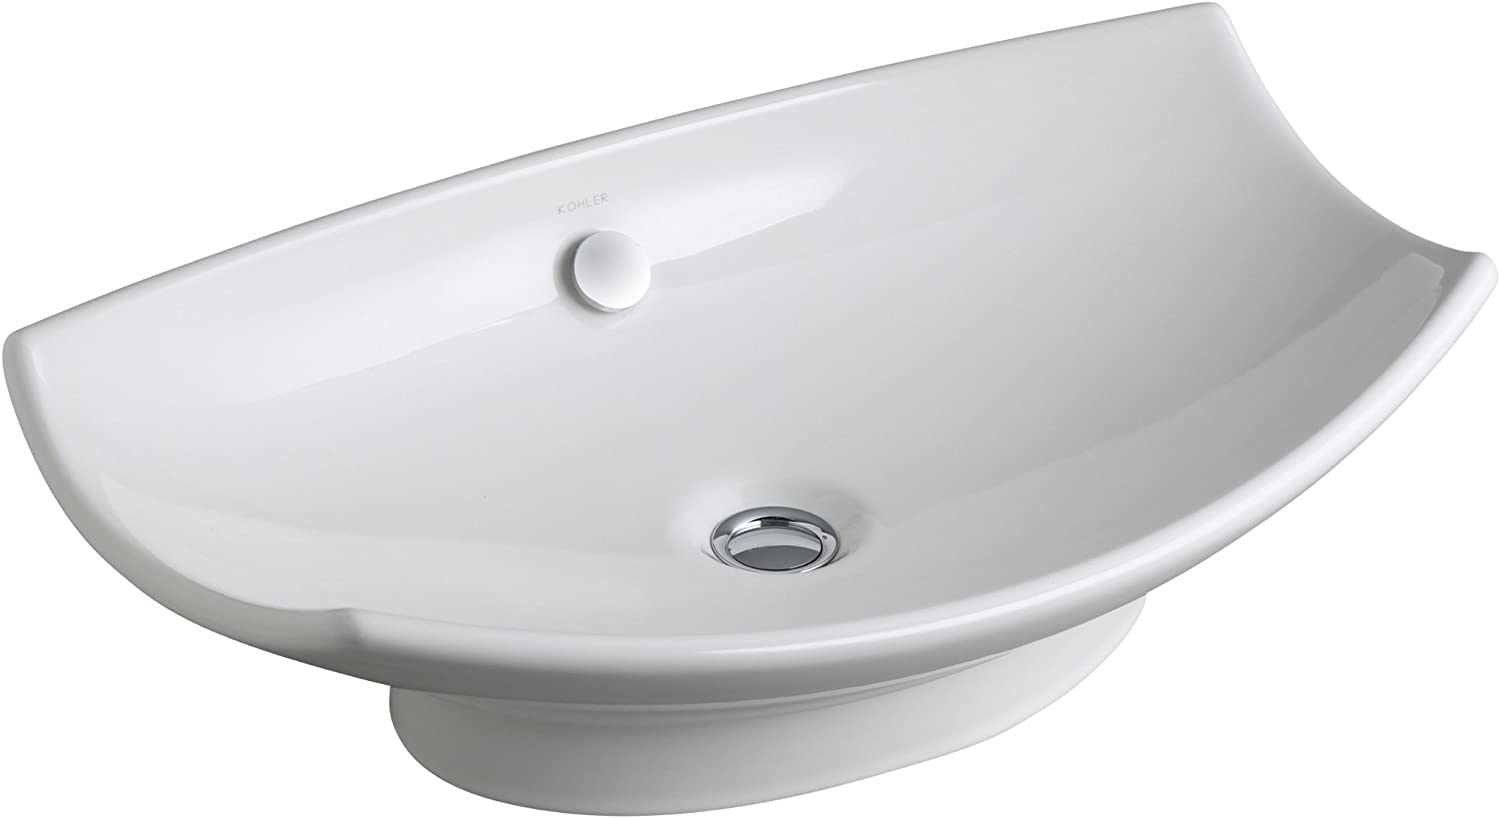 KOHLER K-2530-0 Leaf Vessels Bathroom Sink, White